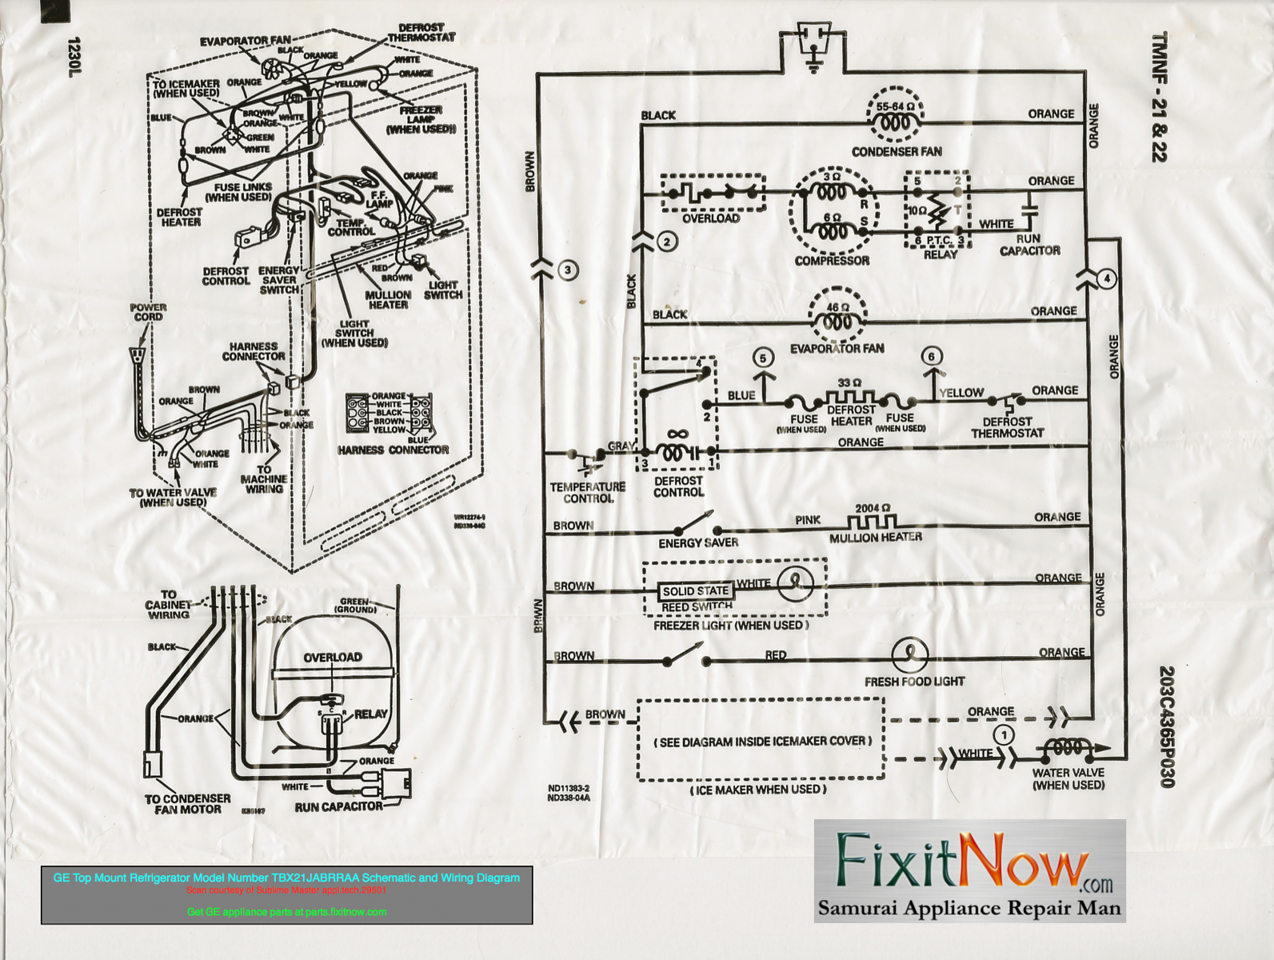 4904374061_e8eb3df6c6_o X2 wiring diagrams and schematics appliantology temperature control wiring diagram at webbmarketing.co